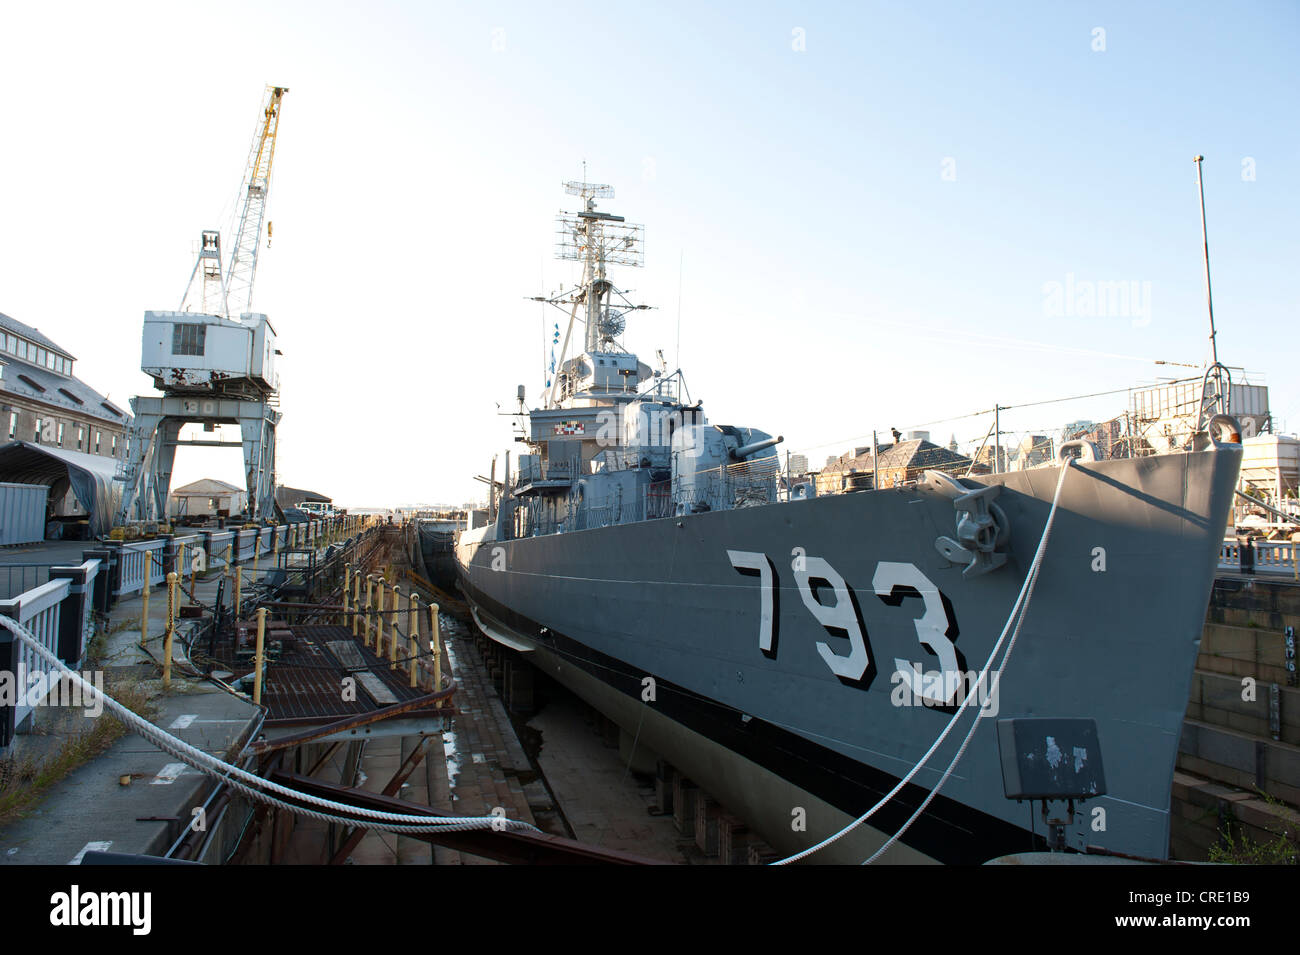 Ship in the harbour, museum ship, navy warship, the destroyer USS Cassin Young DD-793 in dry dock Stock Photo